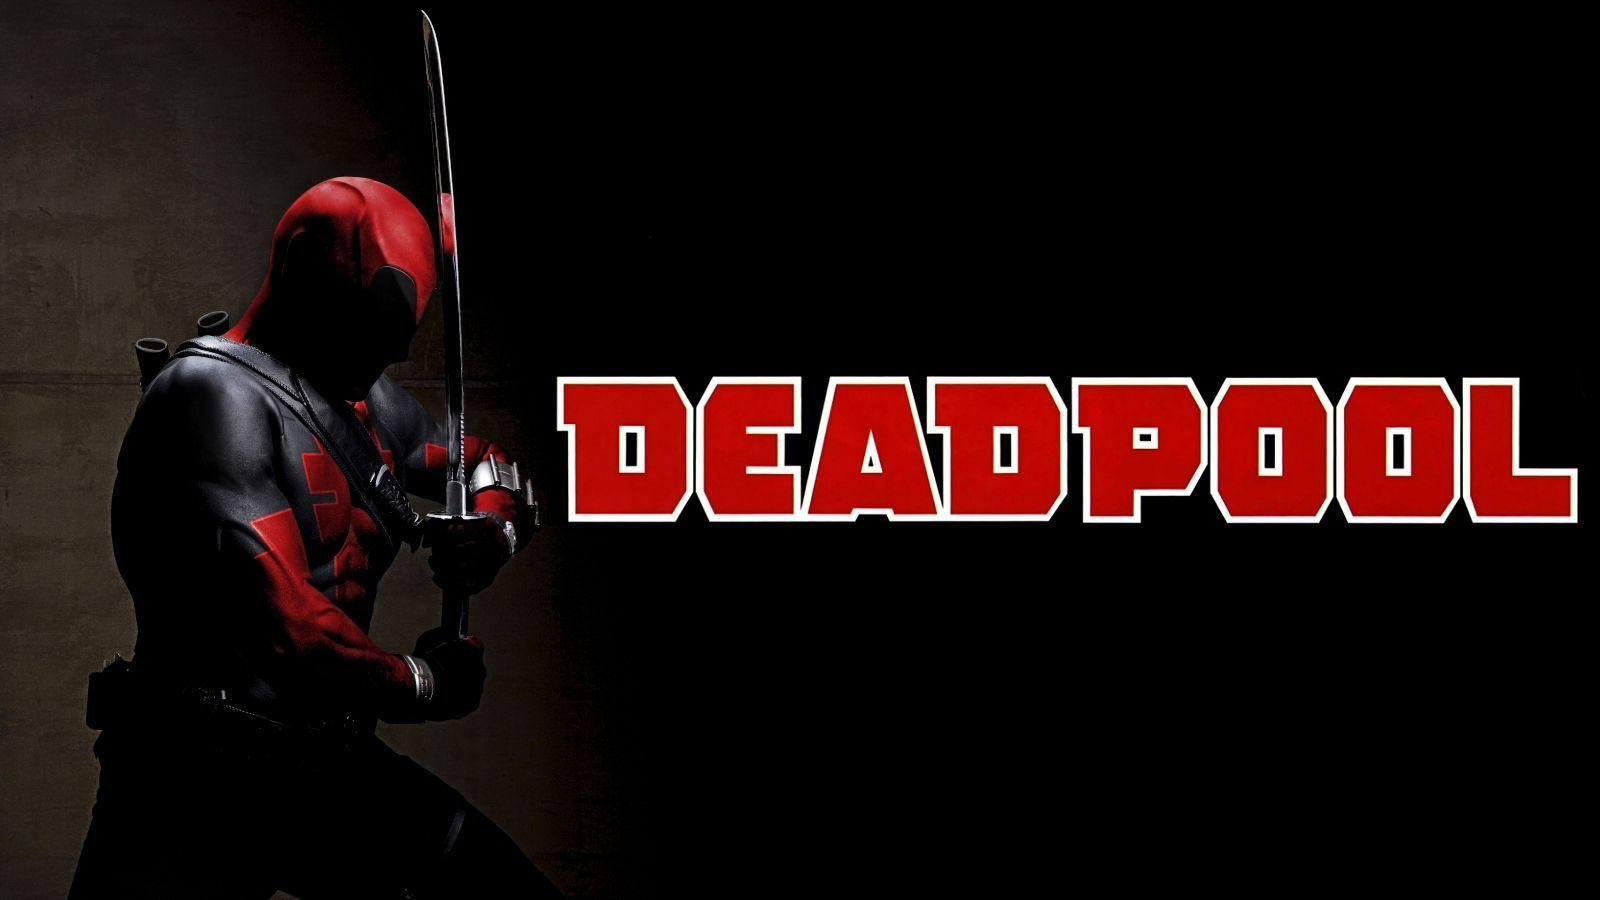 956 deadpool wallpapers movies - photo #29